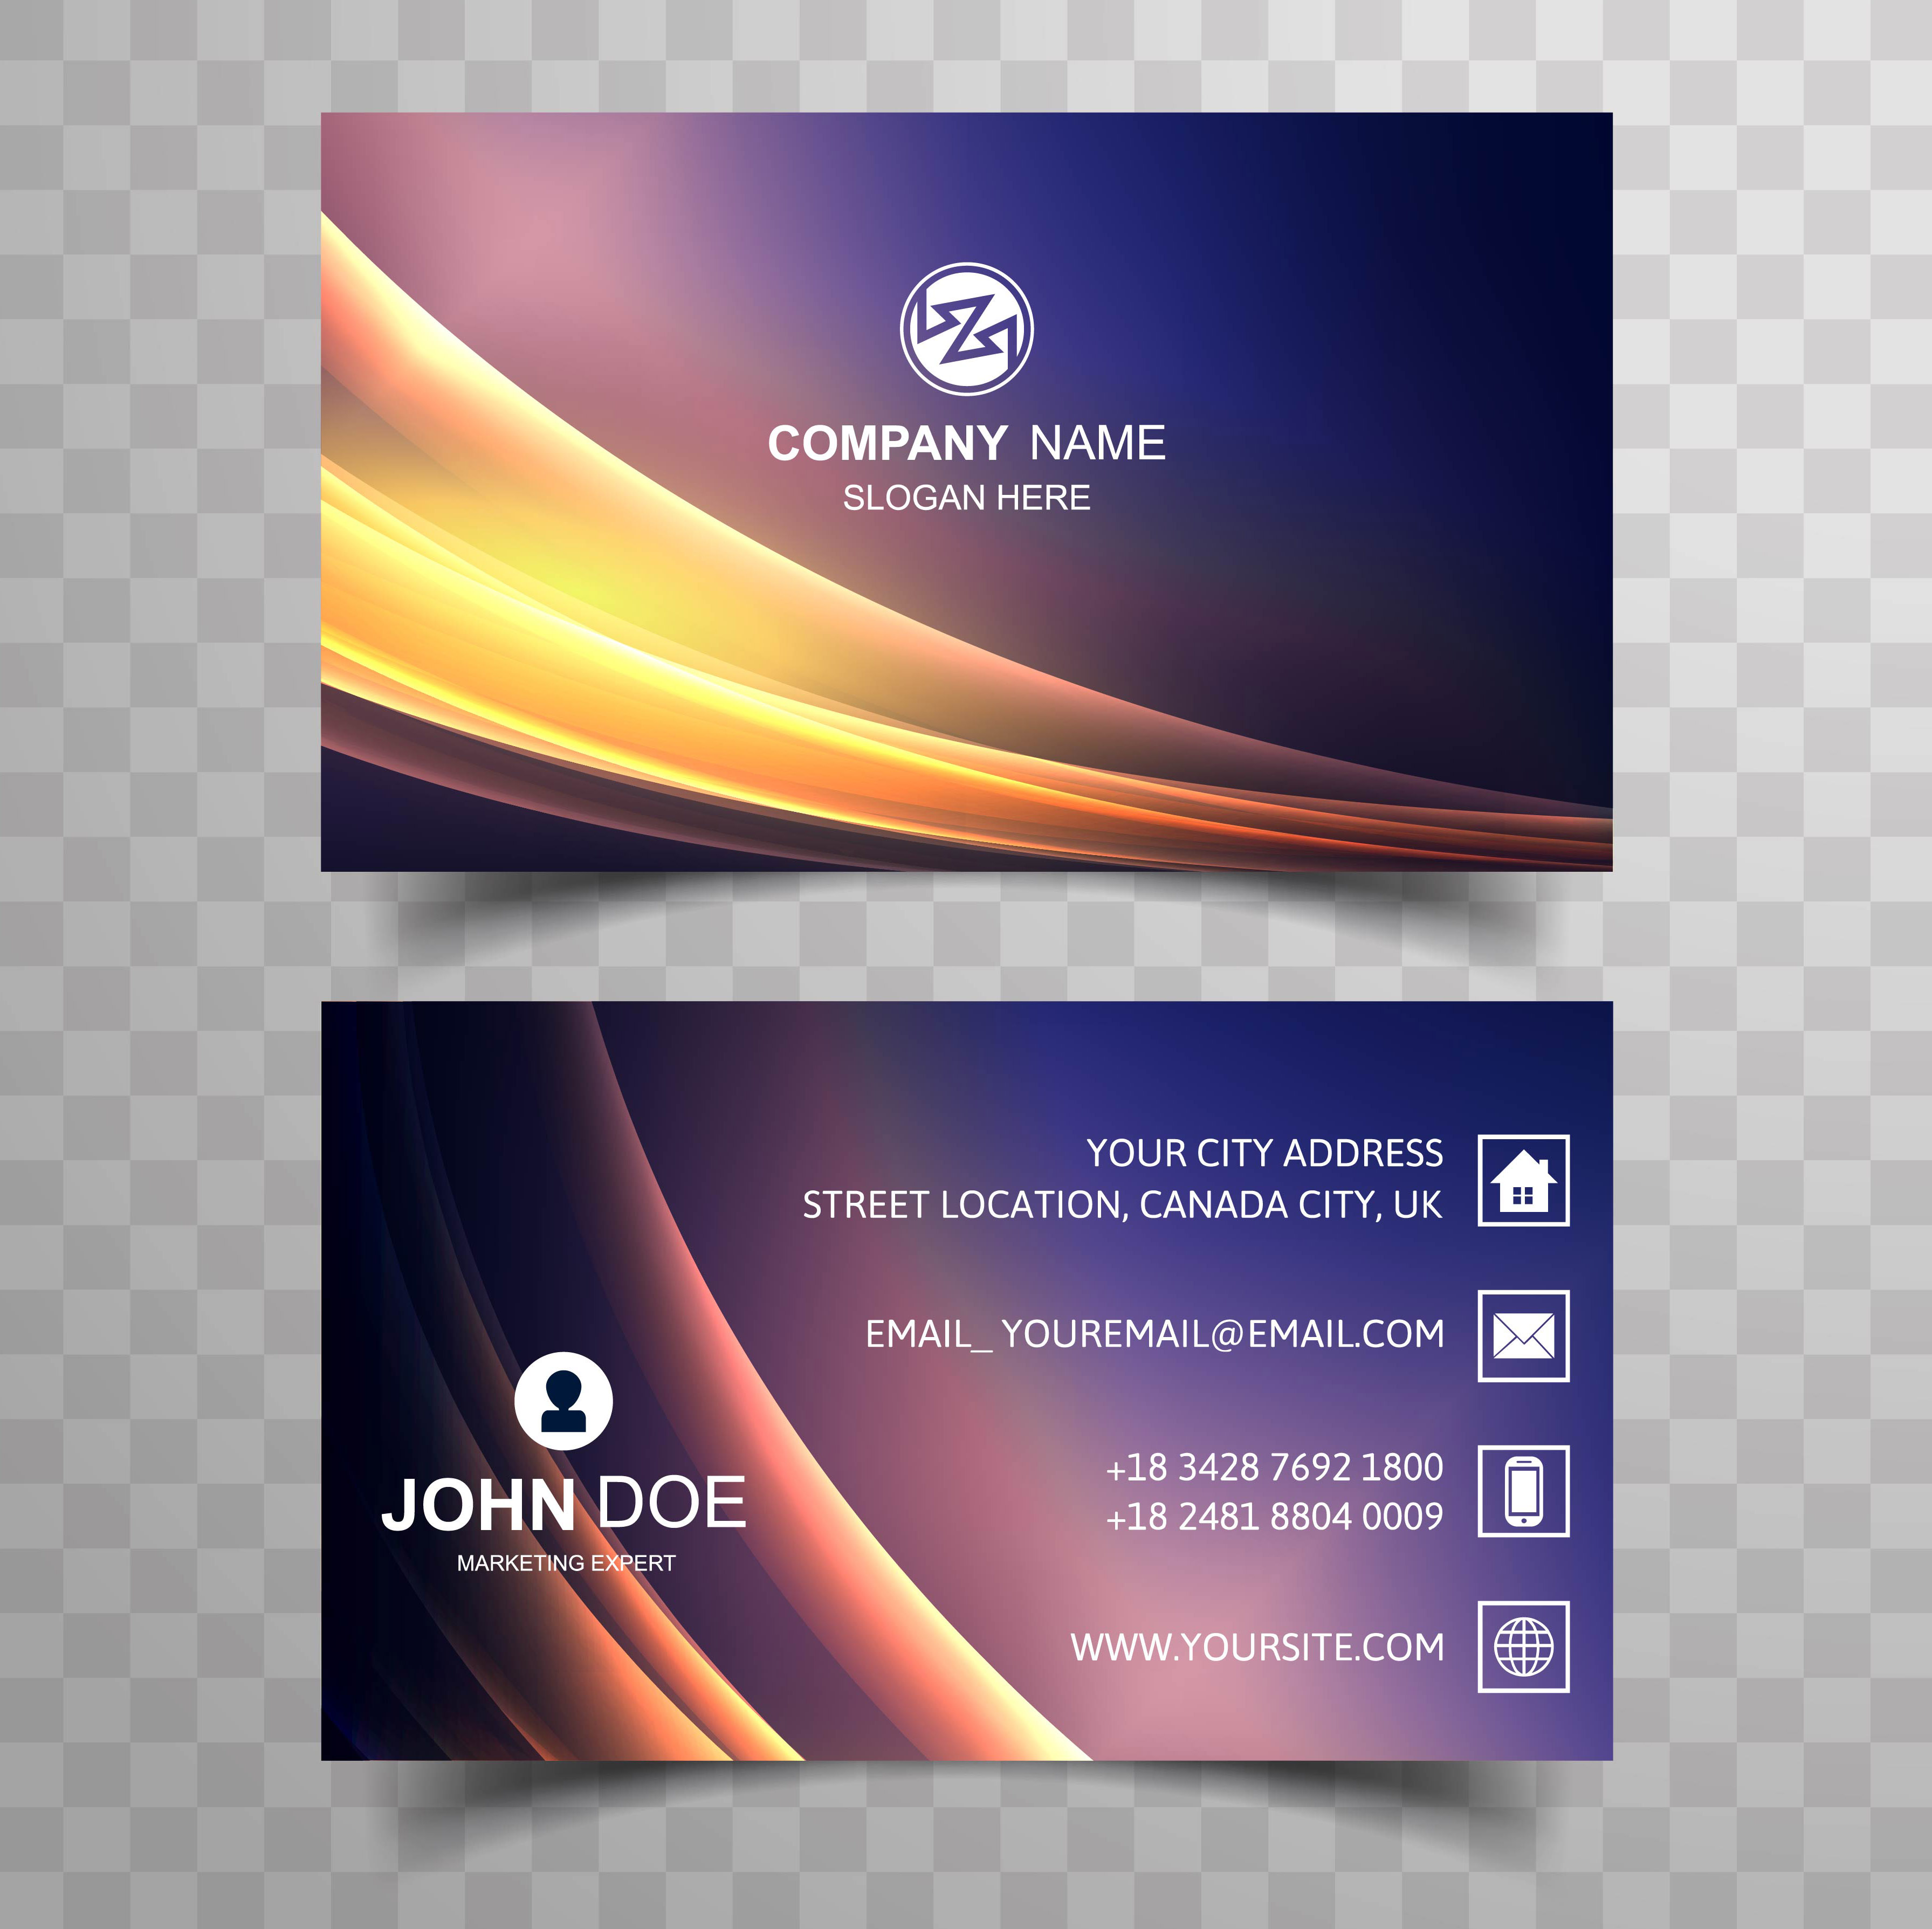 abstract business card colorful shiny wave background